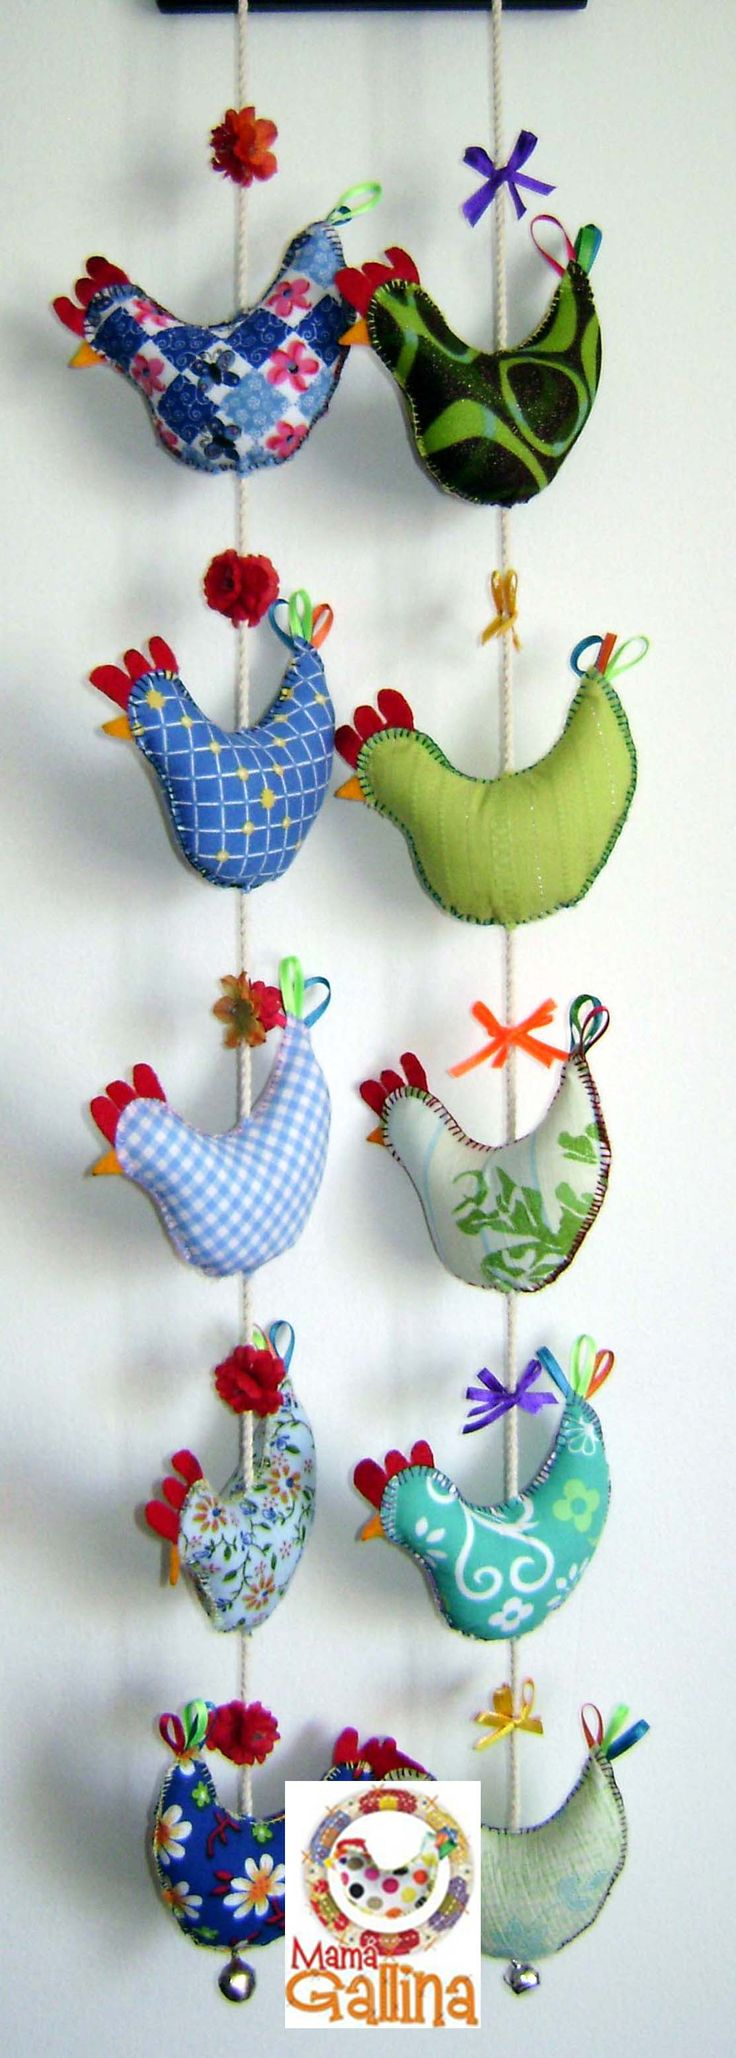 Chicken wall hanging!